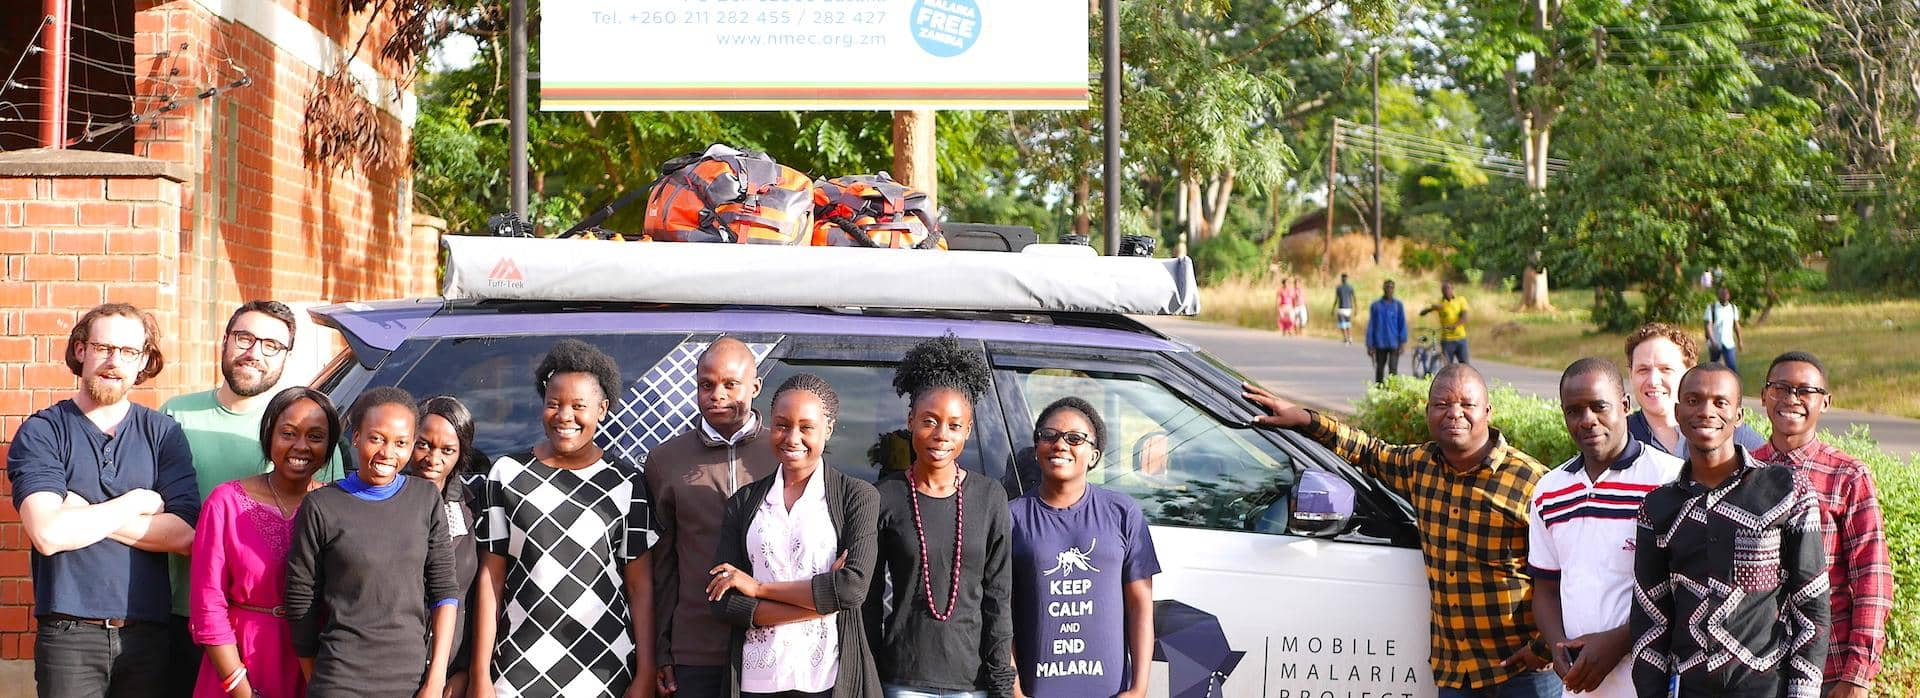 Mobile Malaria Project Team